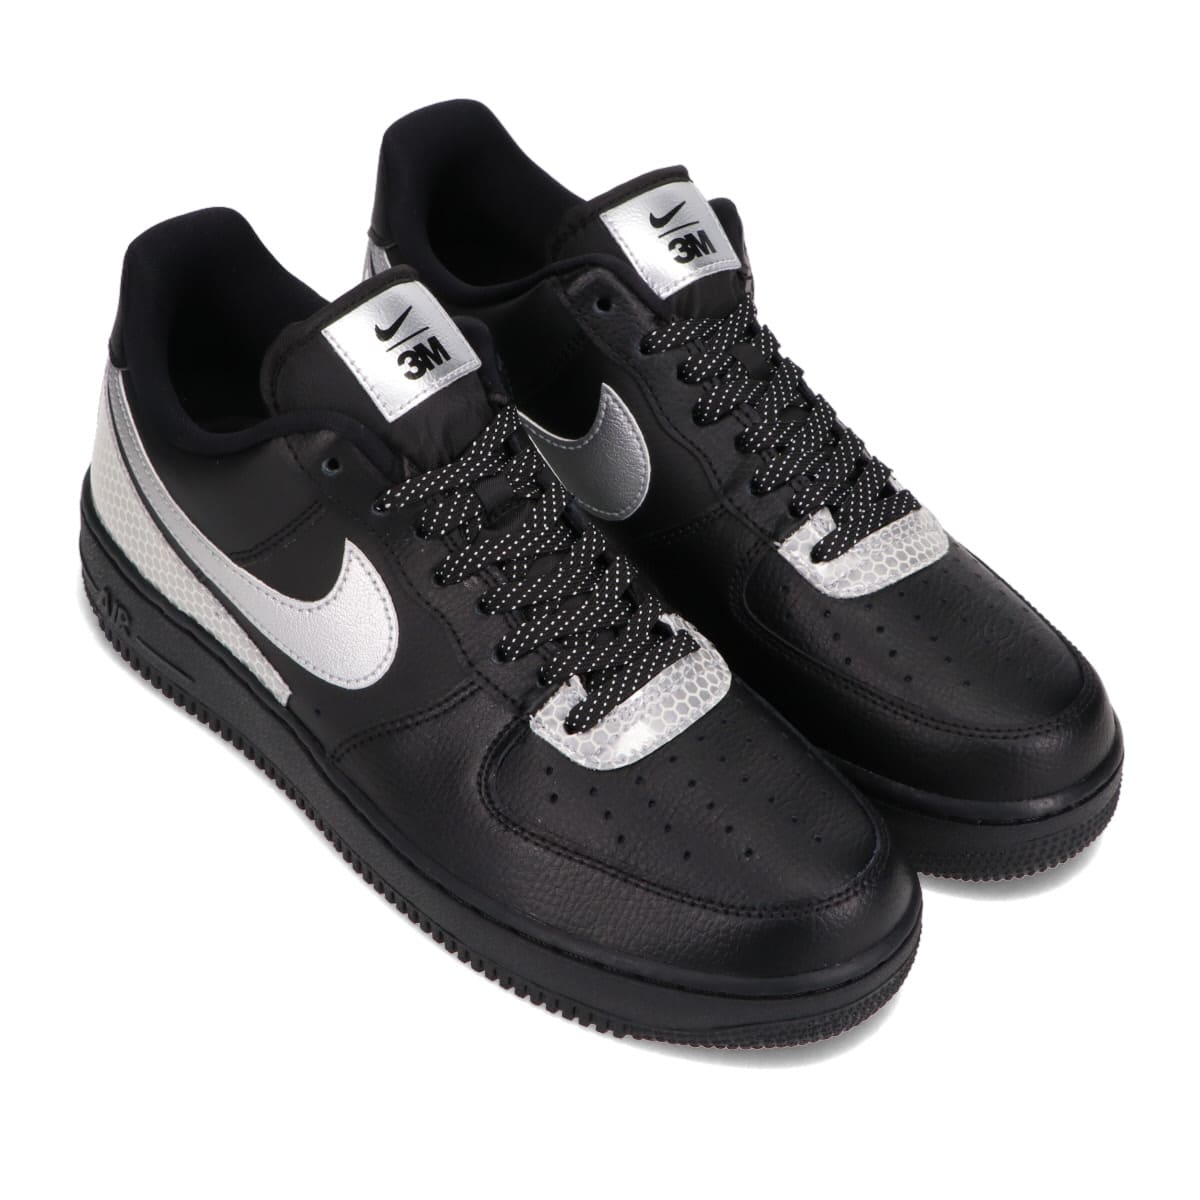 NIKE AIR FORCE 1 '07 LV8 3M BLACK/METALLIC SILVER-BLACK 20HO-I_photo_large